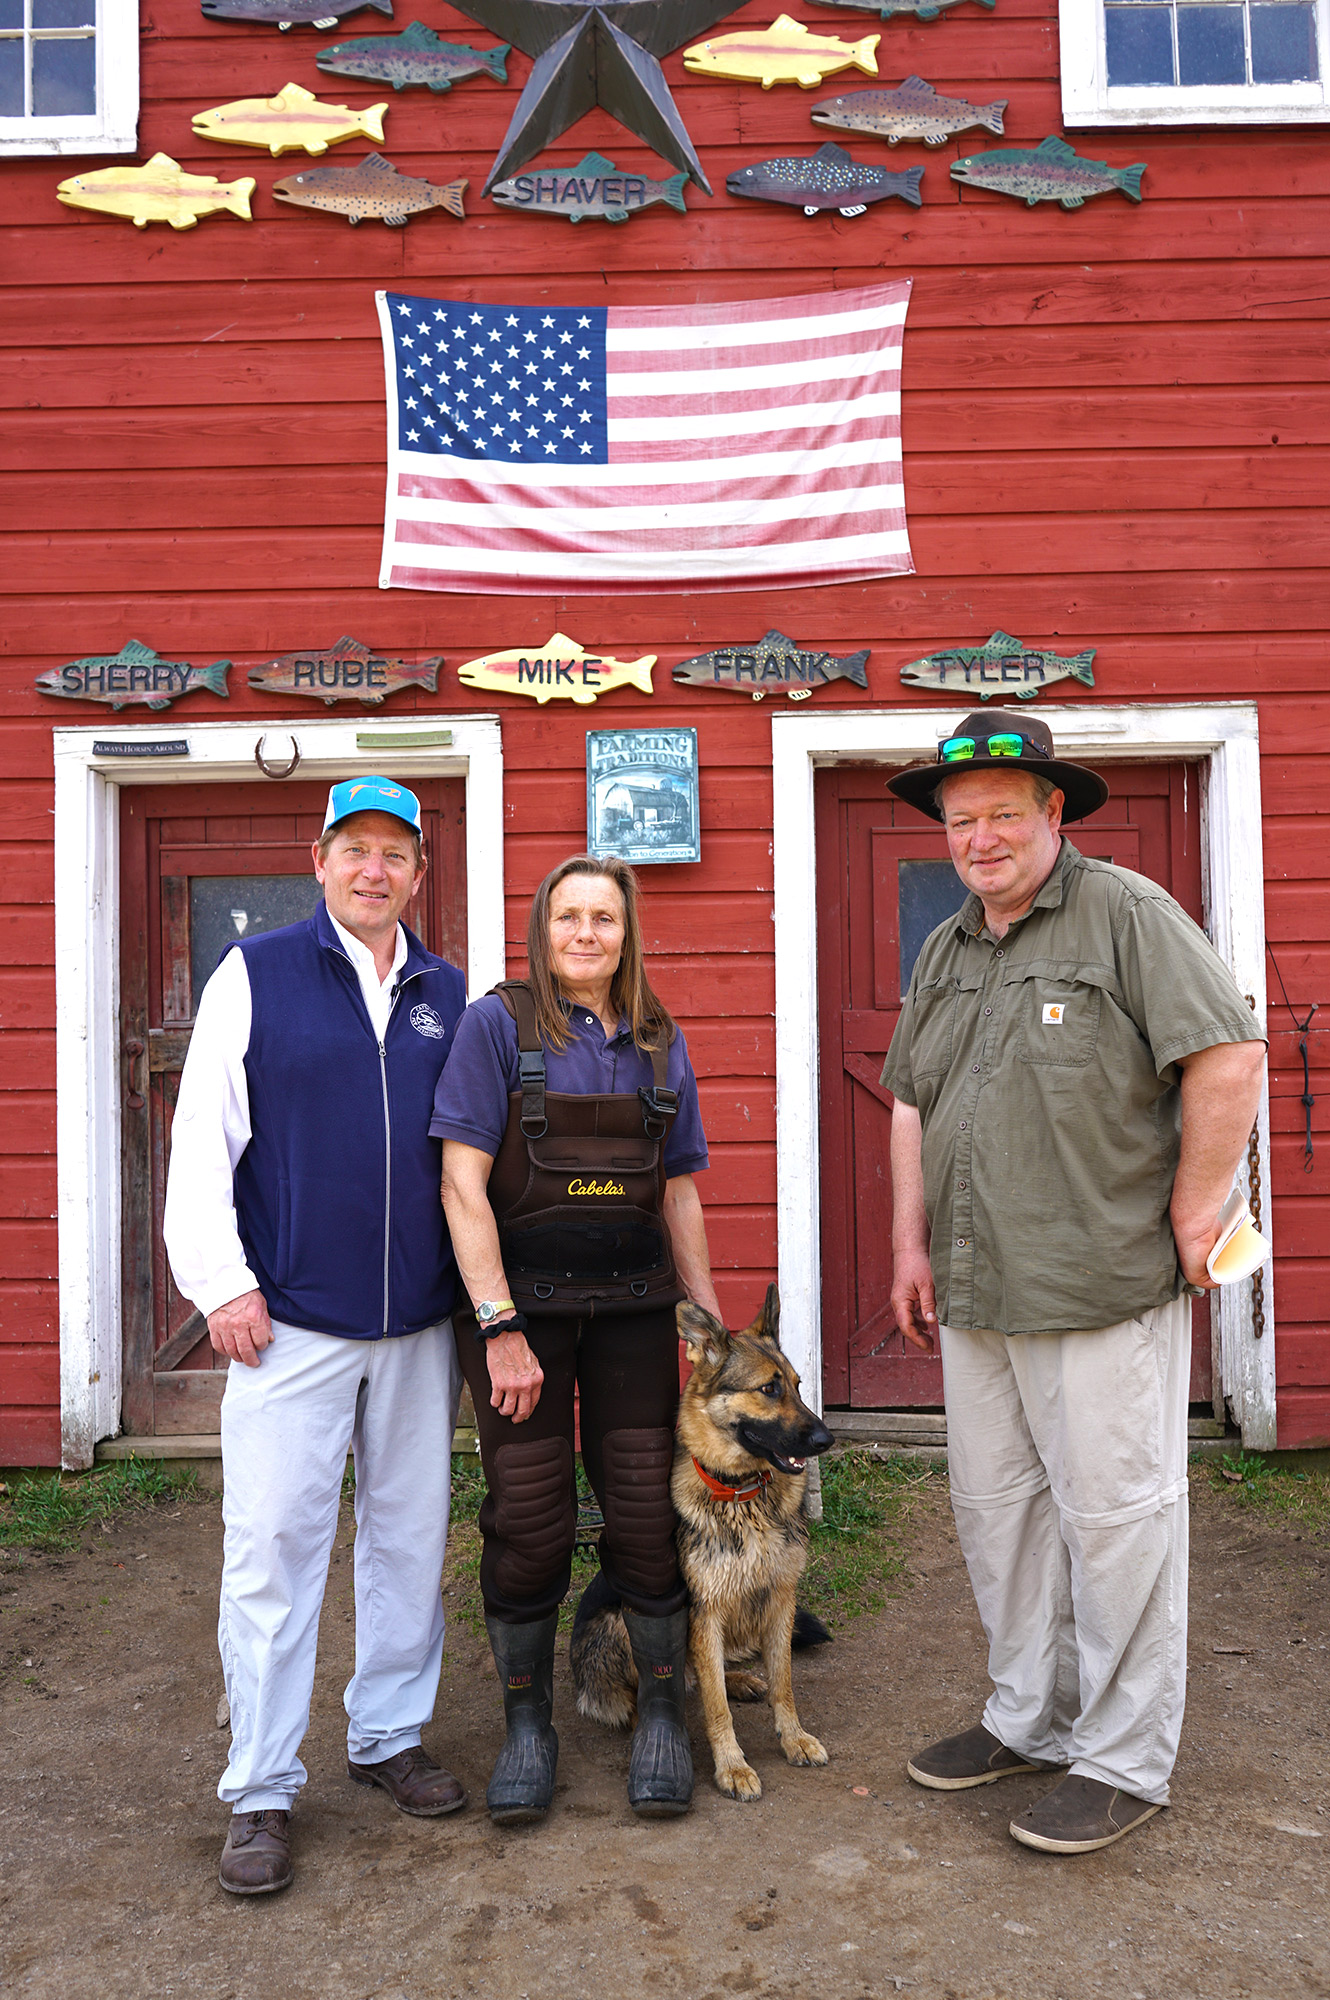 At the Beaverkill Trout Farm with owner Sherry Shaver, Chef Galen Sampson & the dog Jess